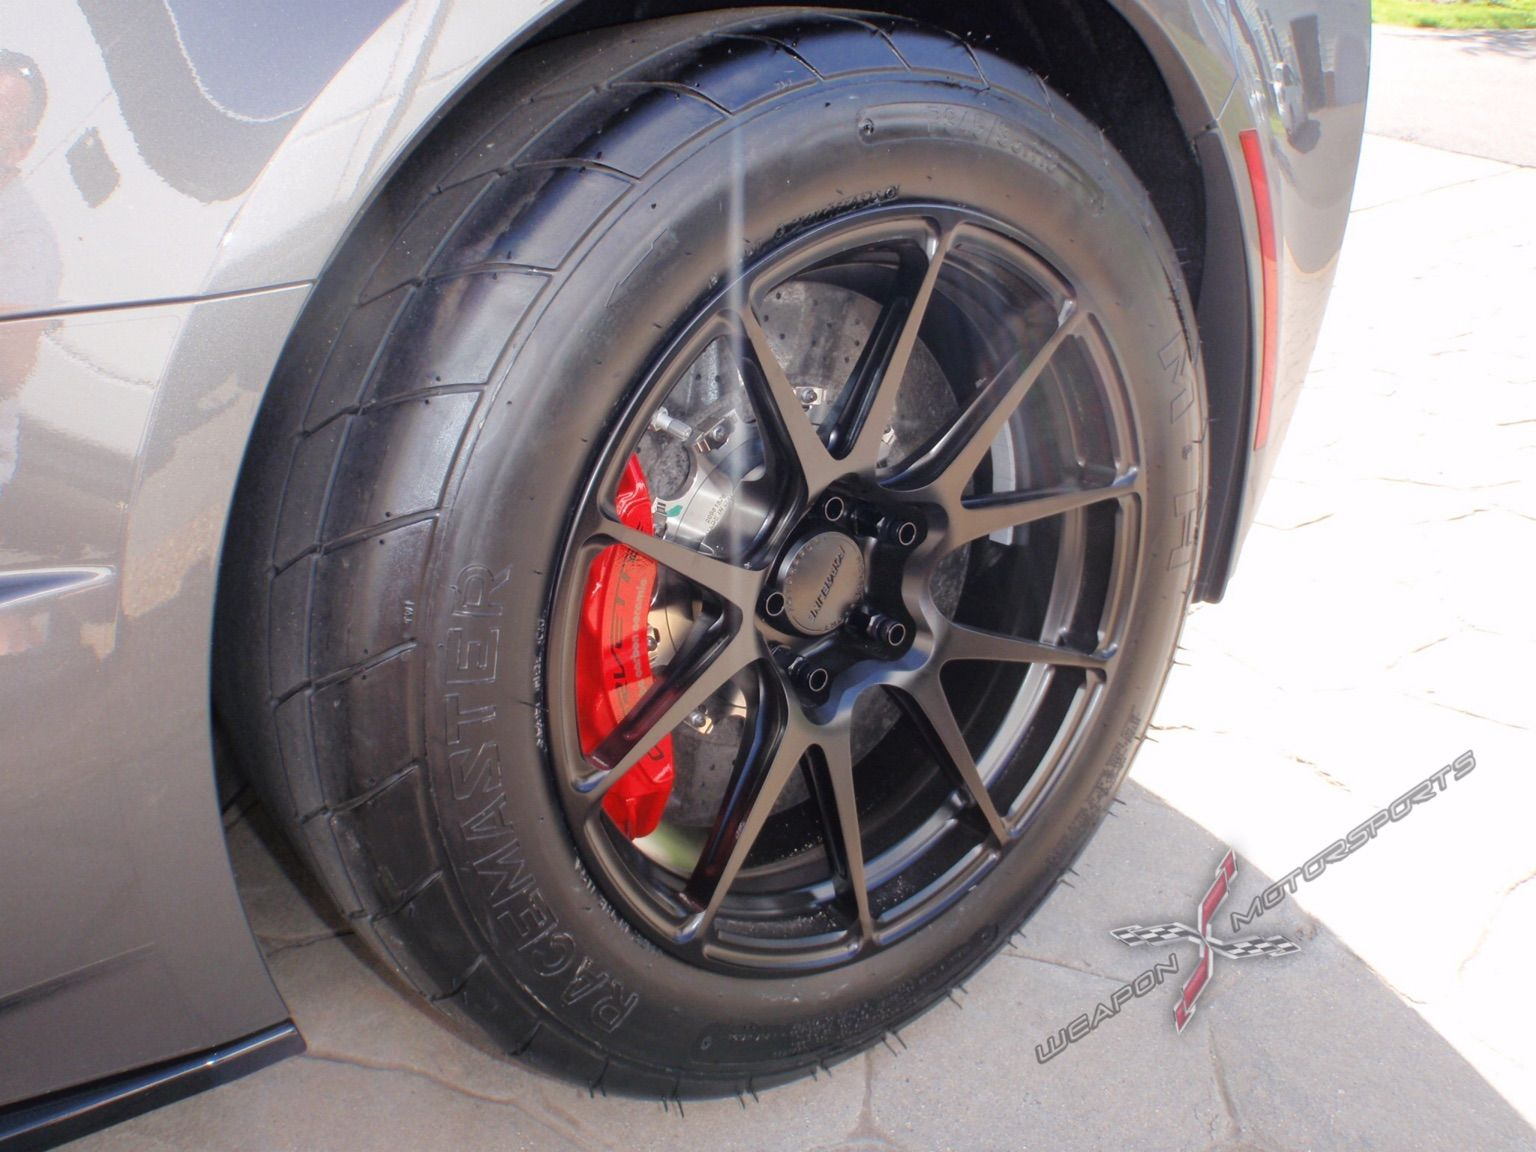 Rob M contacted Weapon X Motorsports and invested in wheels that